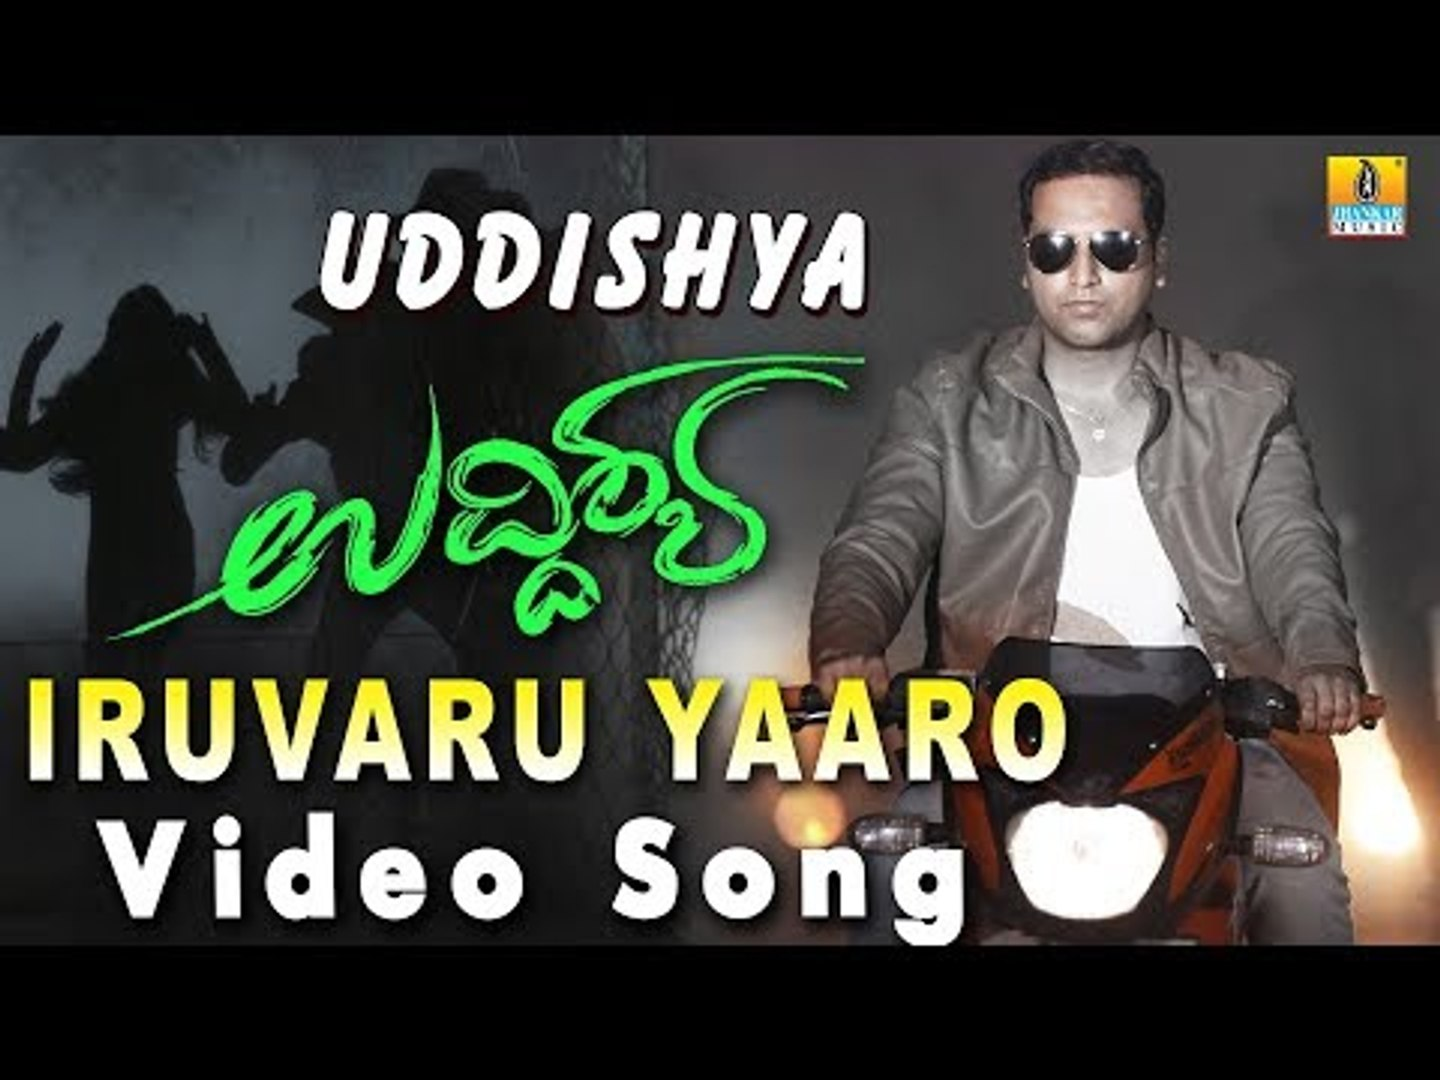 Uddishya - Iruvaru Yaaro Video Song | New Kannada Movie Song 2018